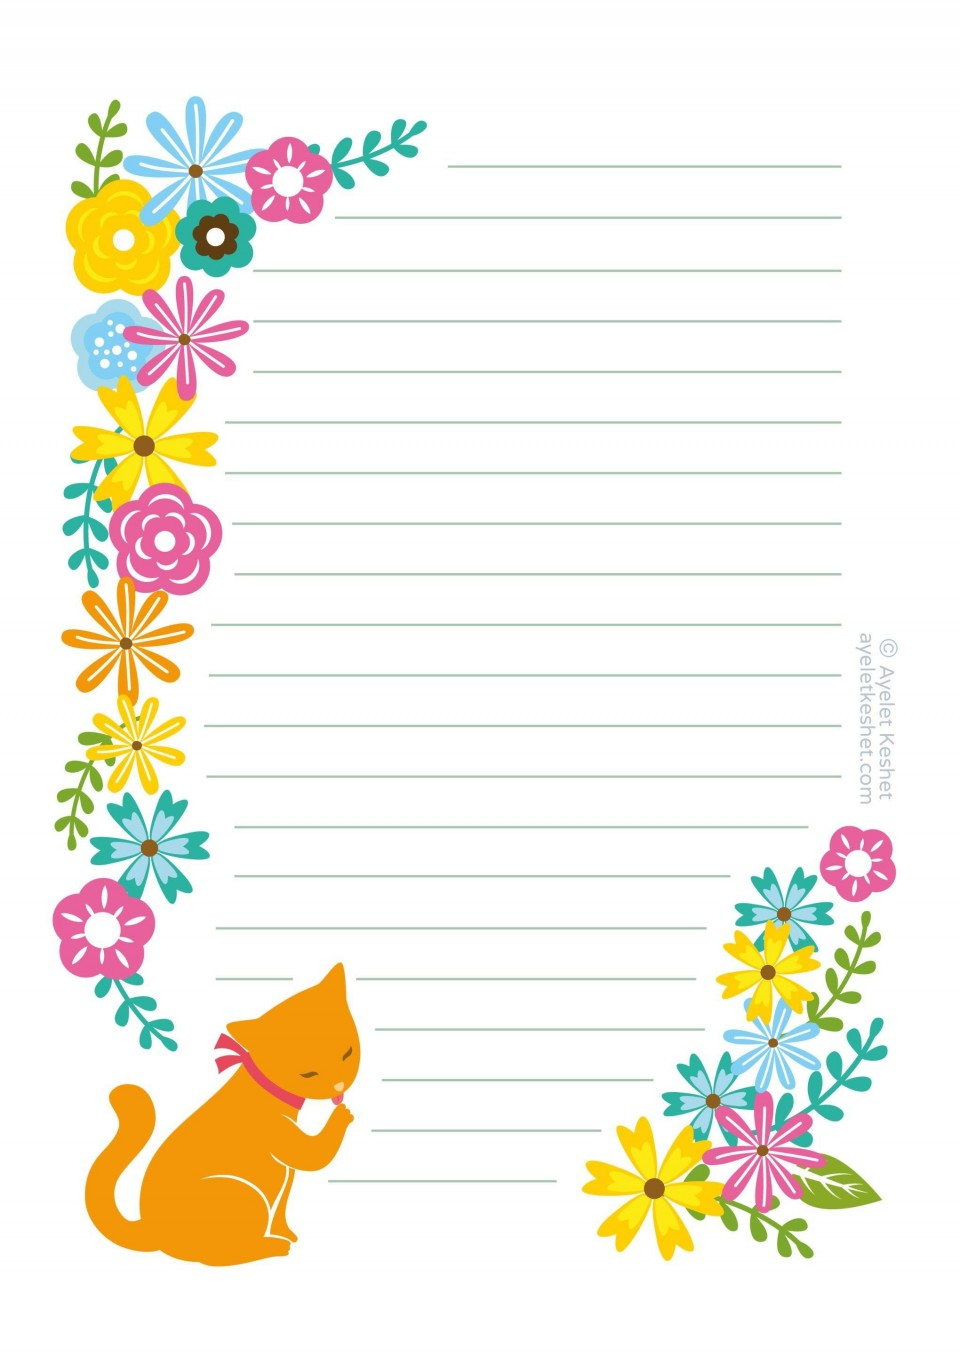 008 Unique Free Printable Stationery Paper Template Highest Clarity 960